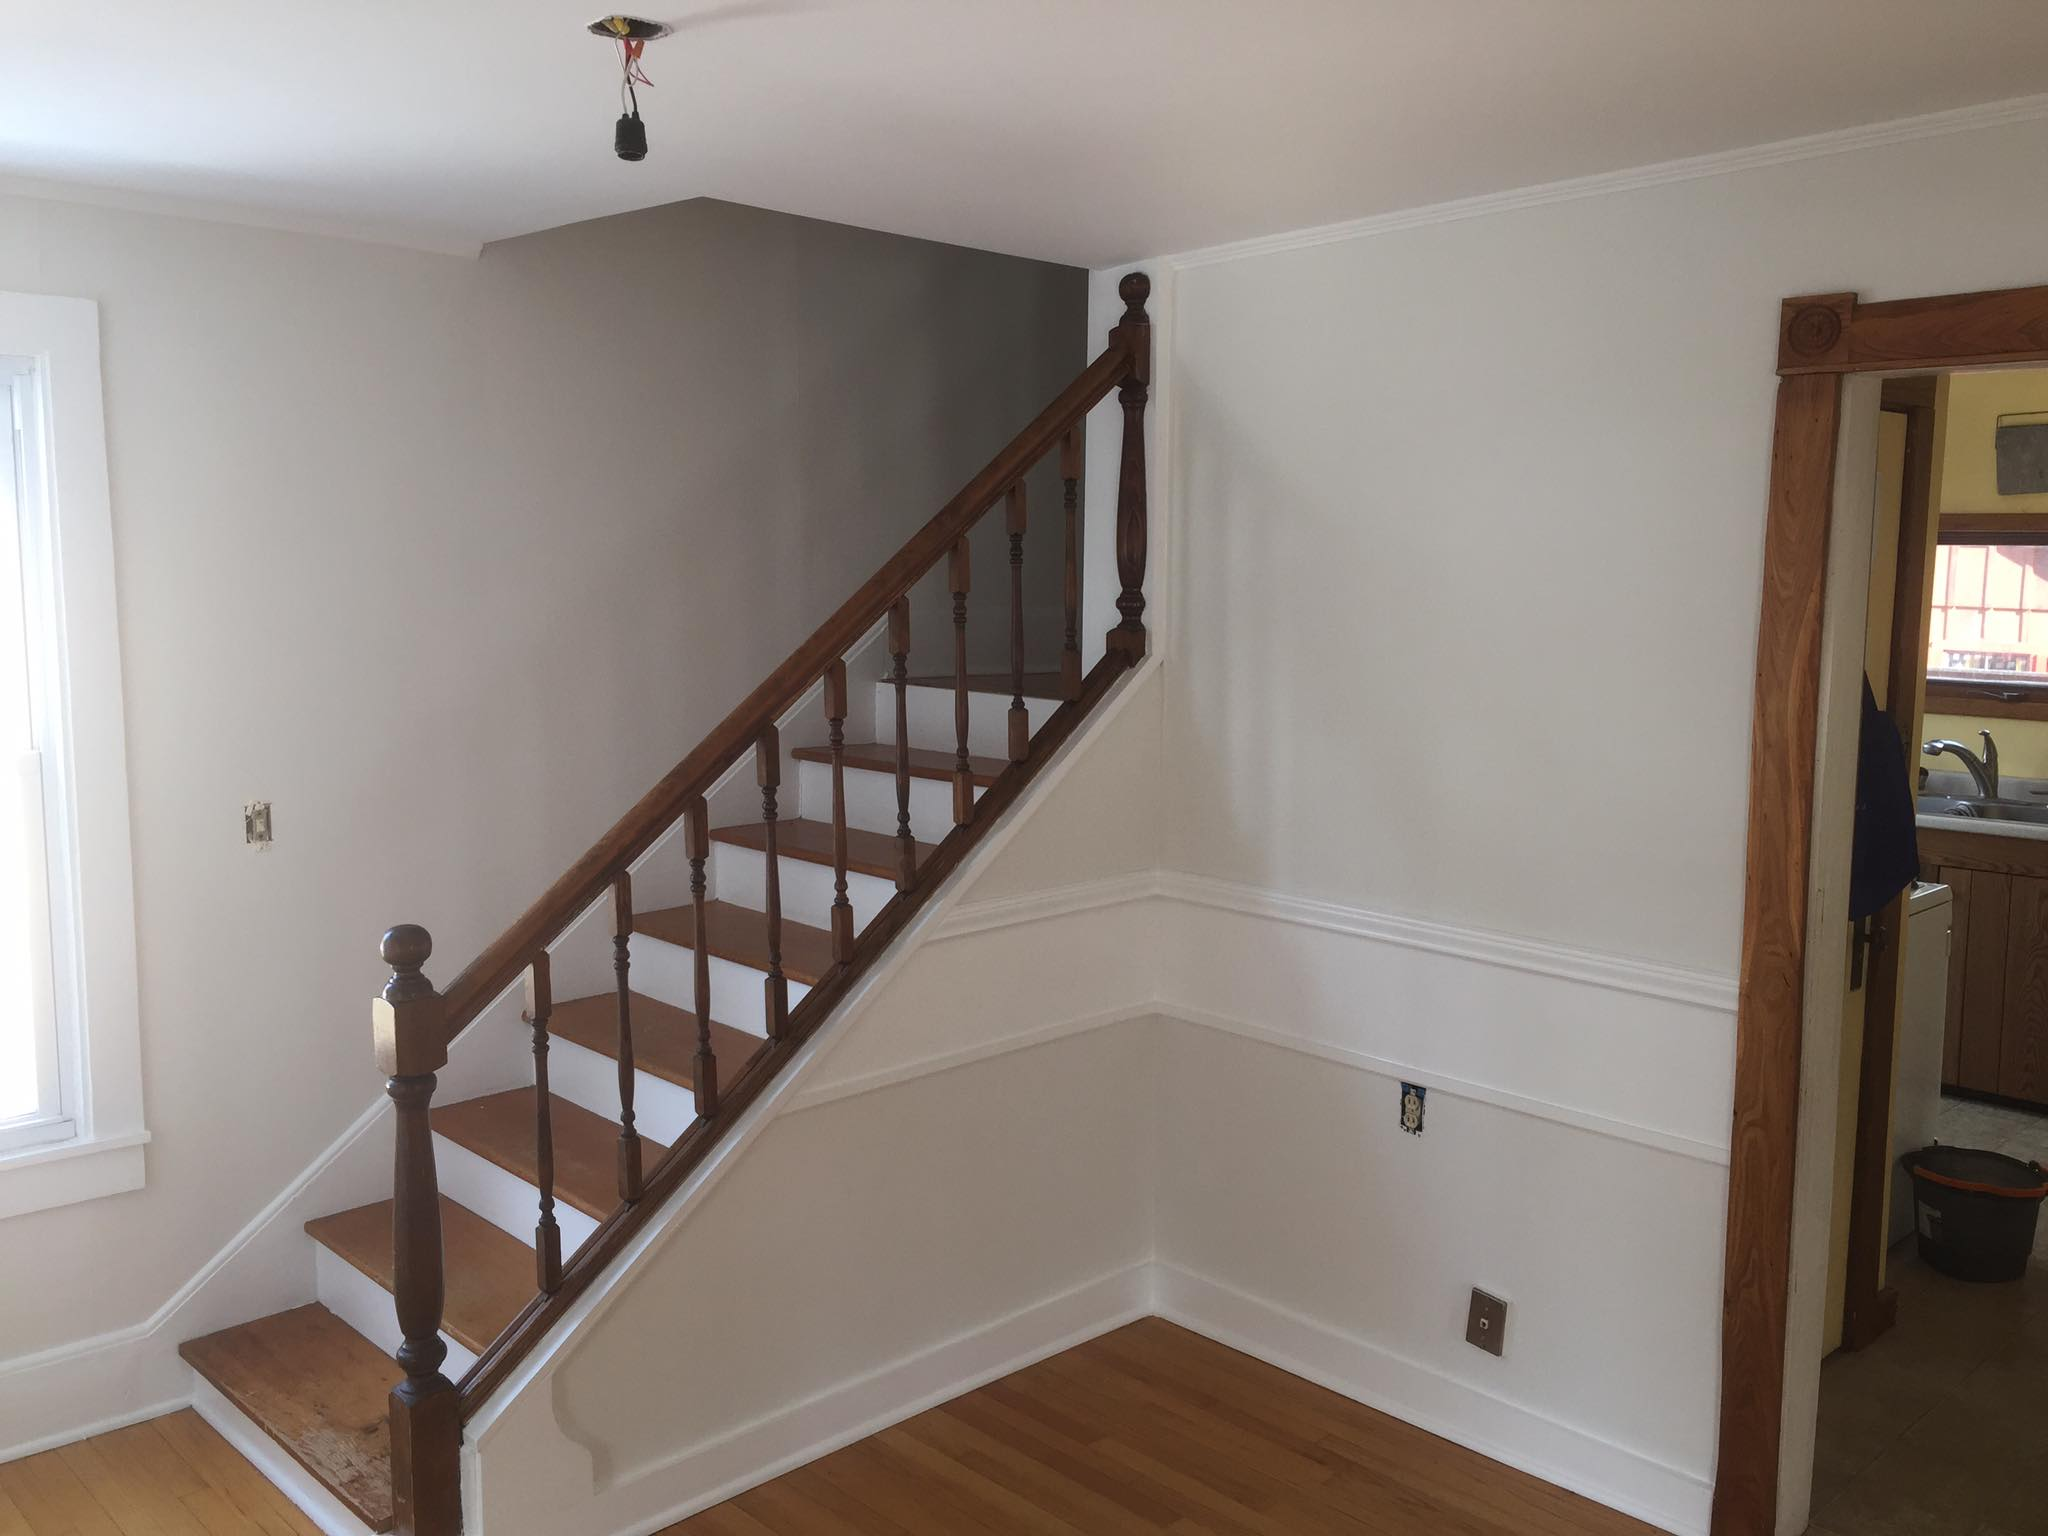 painting job bolton hartford ct